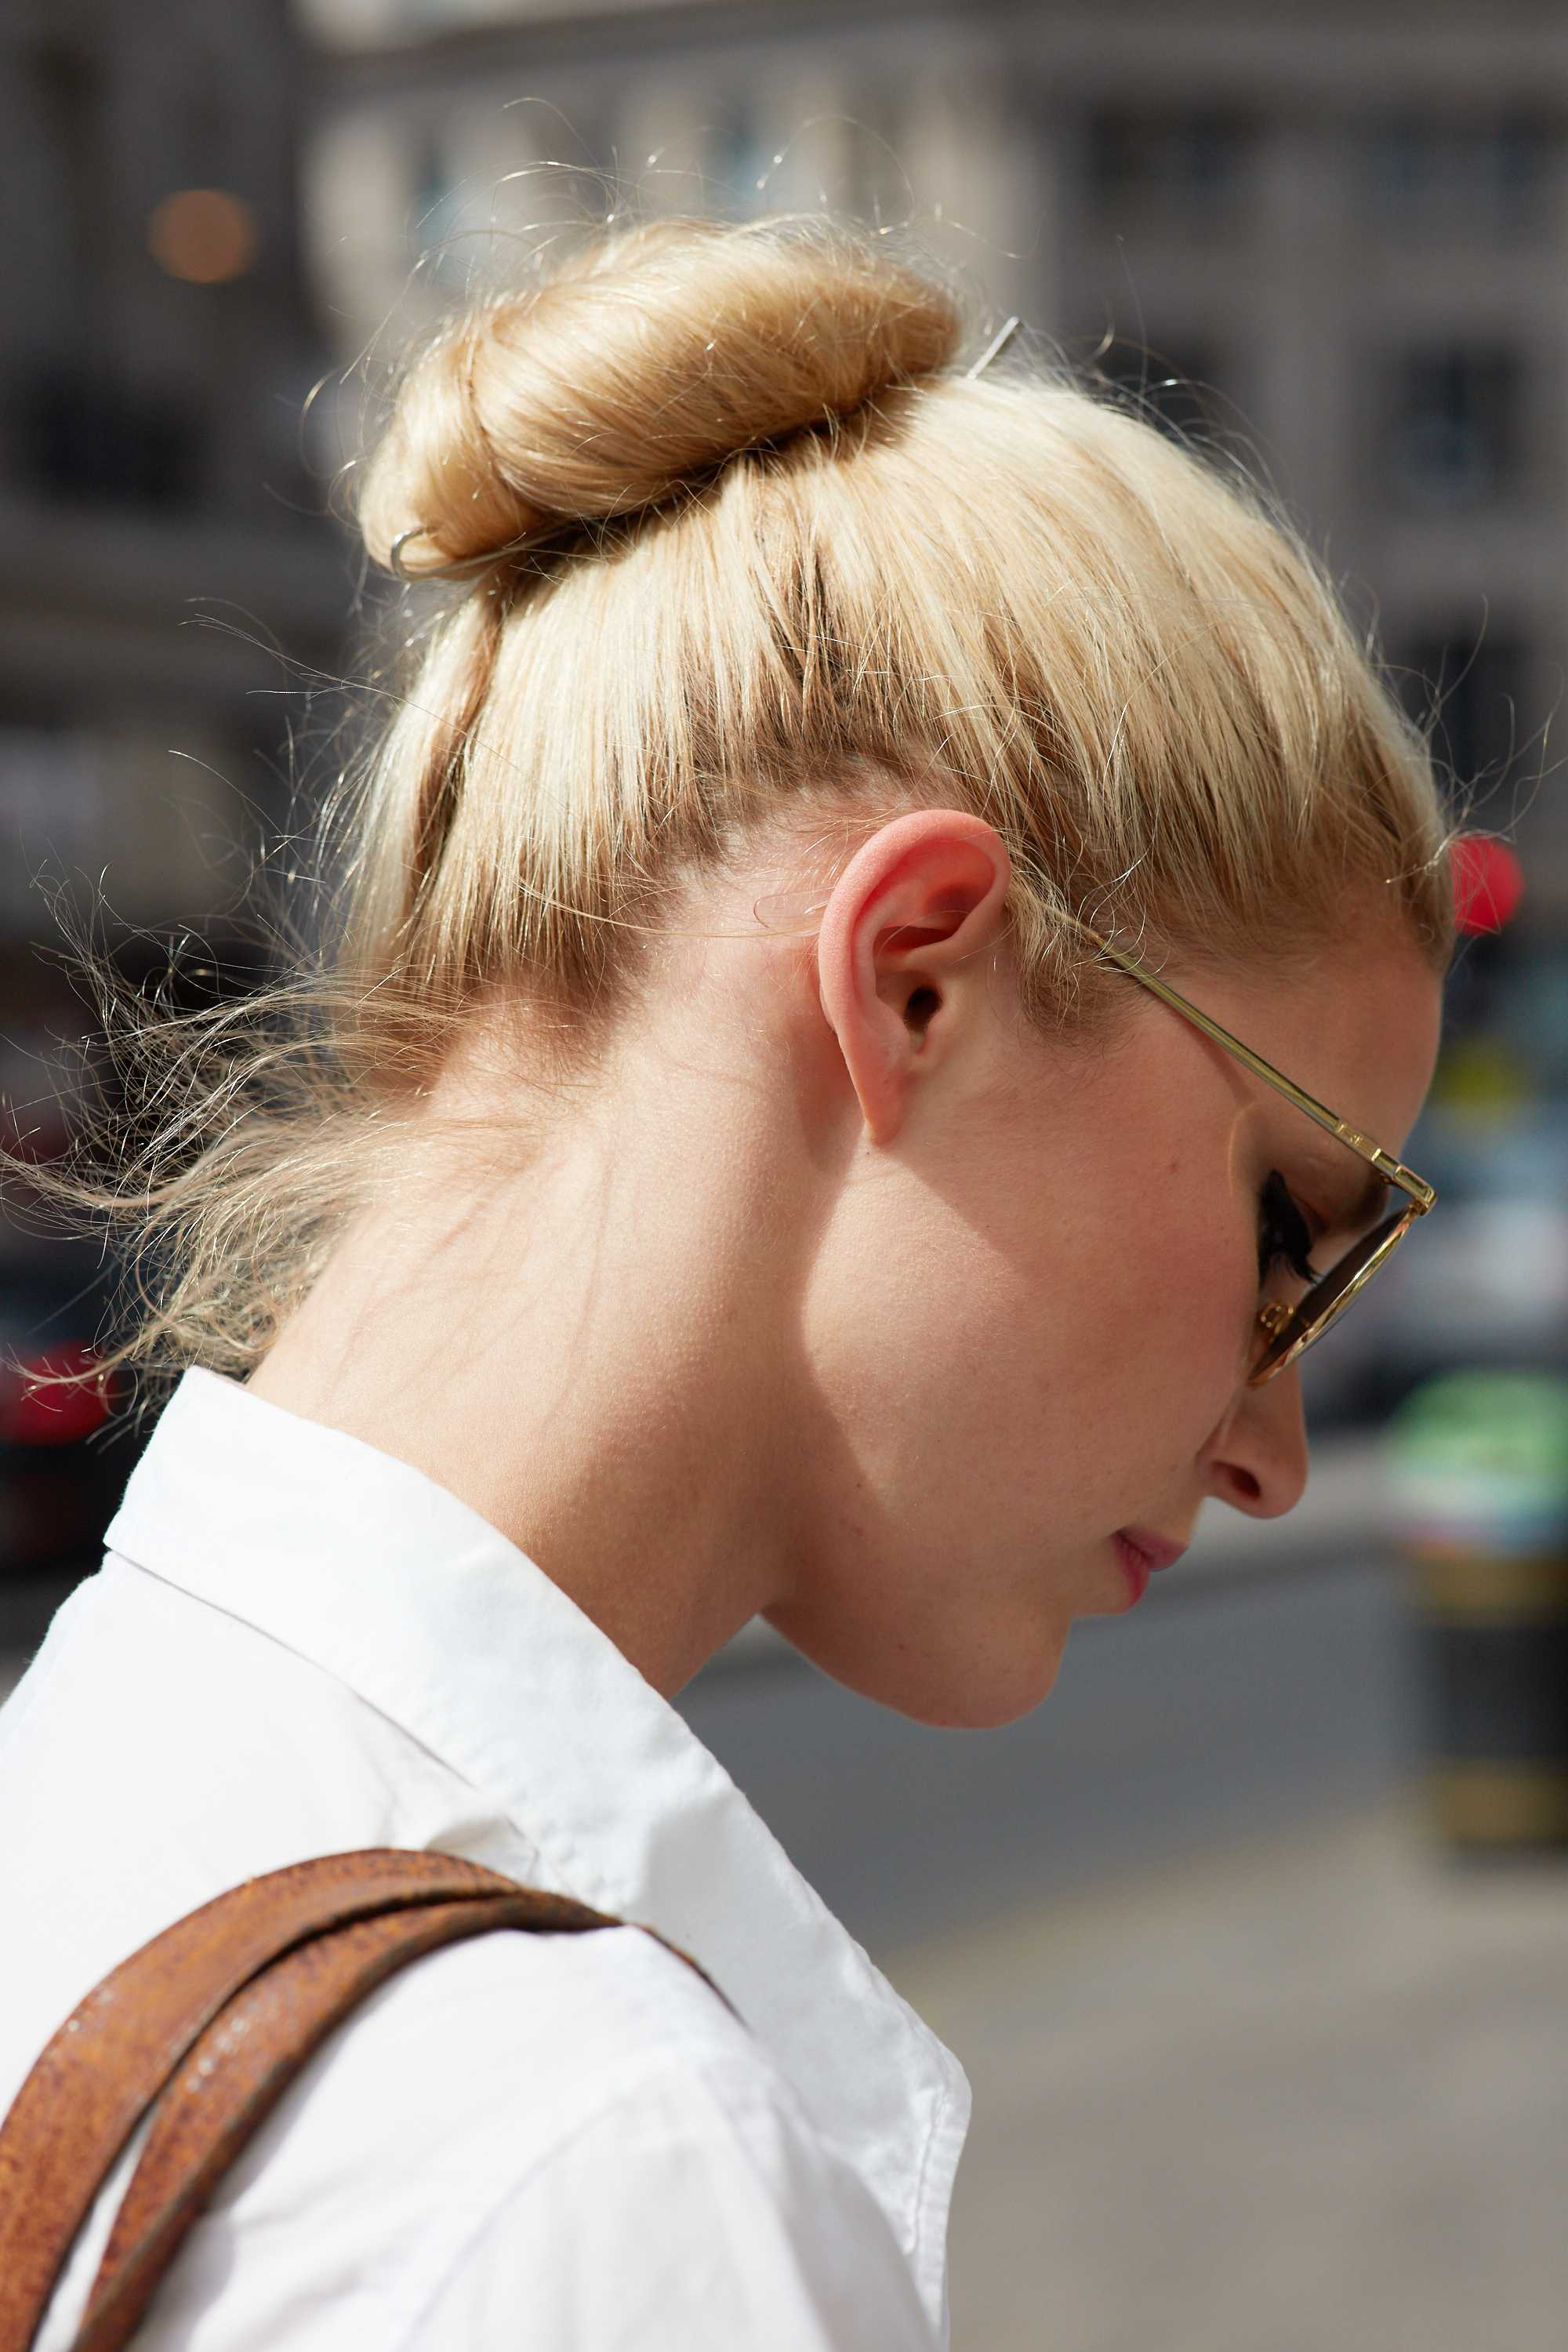 Long hair ideas: Shot of a model with long golden blonde hair styled into a updo hair, wearing a white shirt posing outside